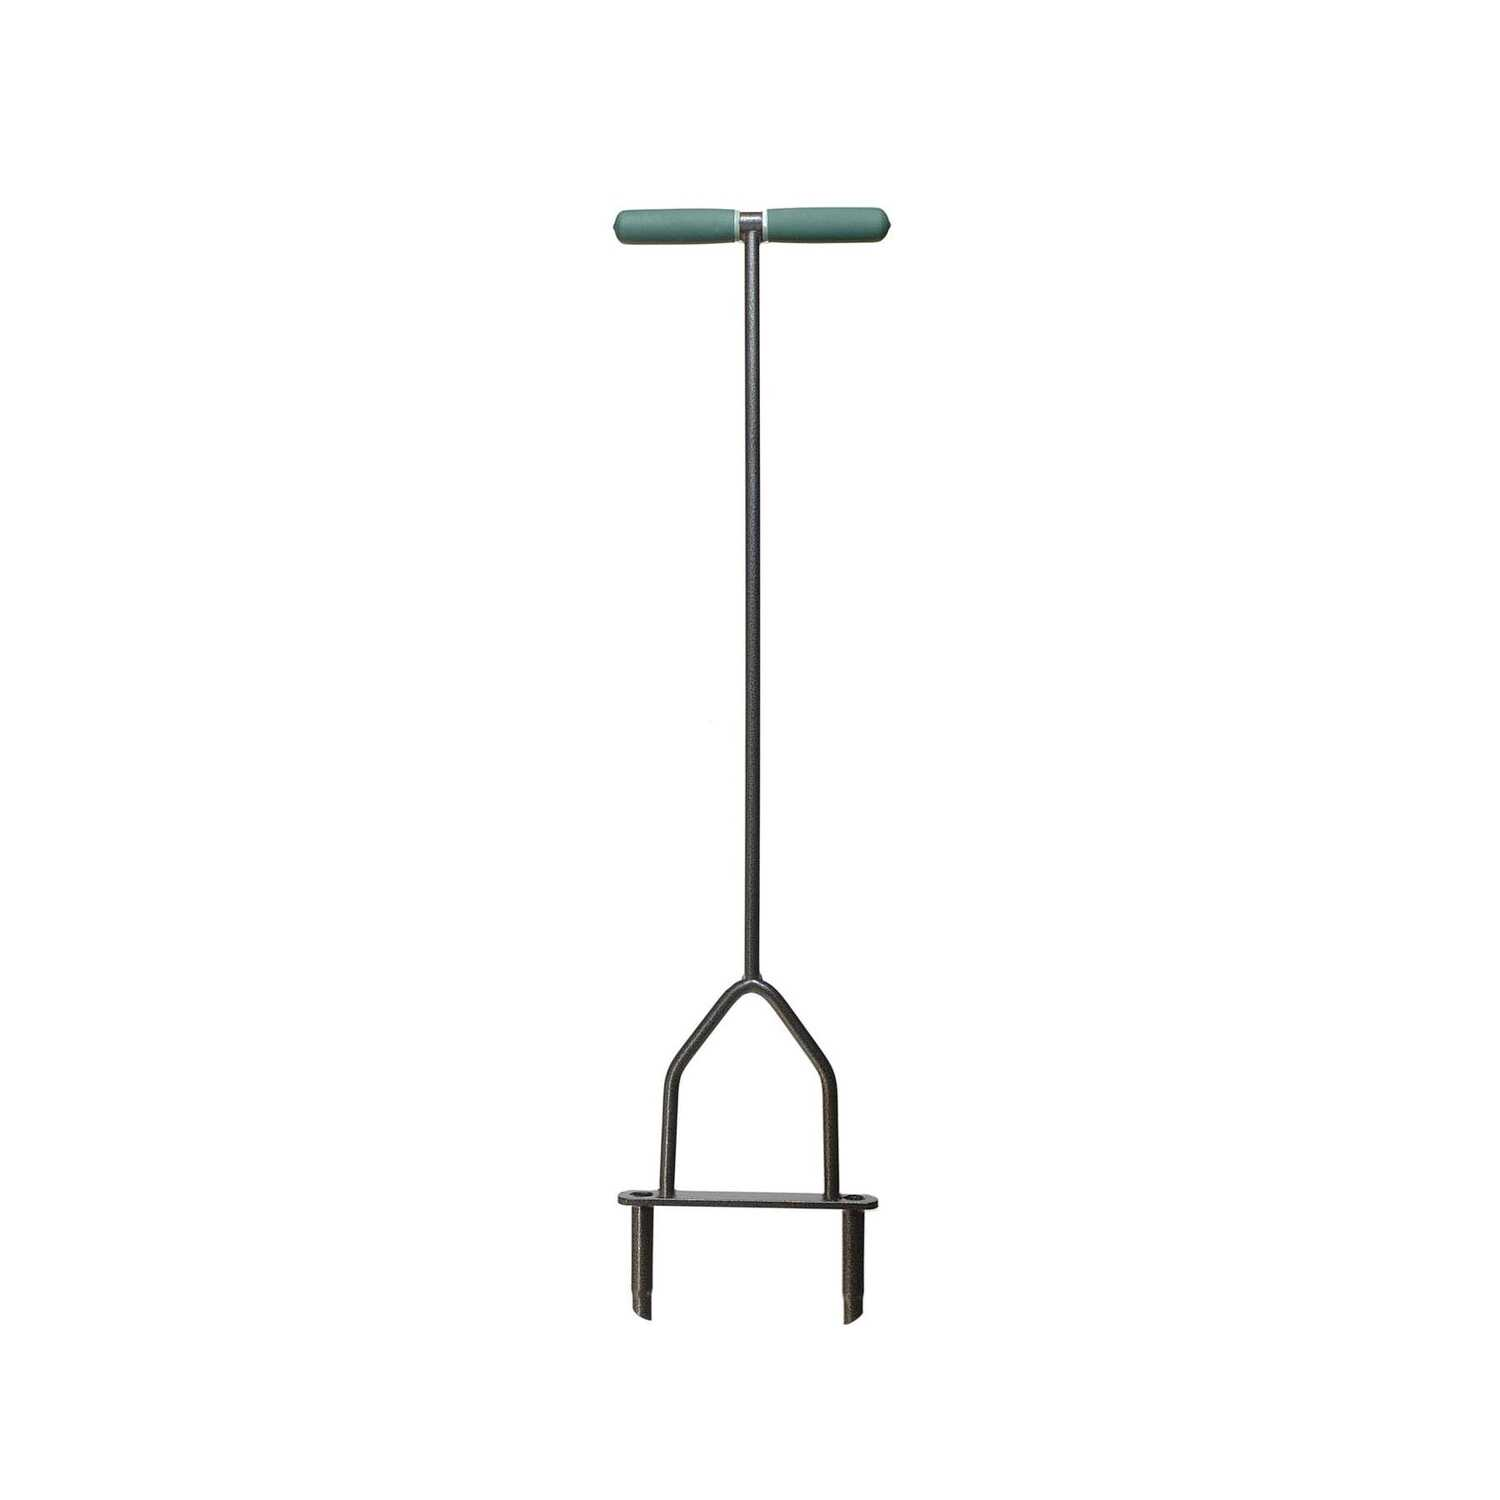 Lewis  Yard Butler  Hand Held  9 in. W Lawn Aerator